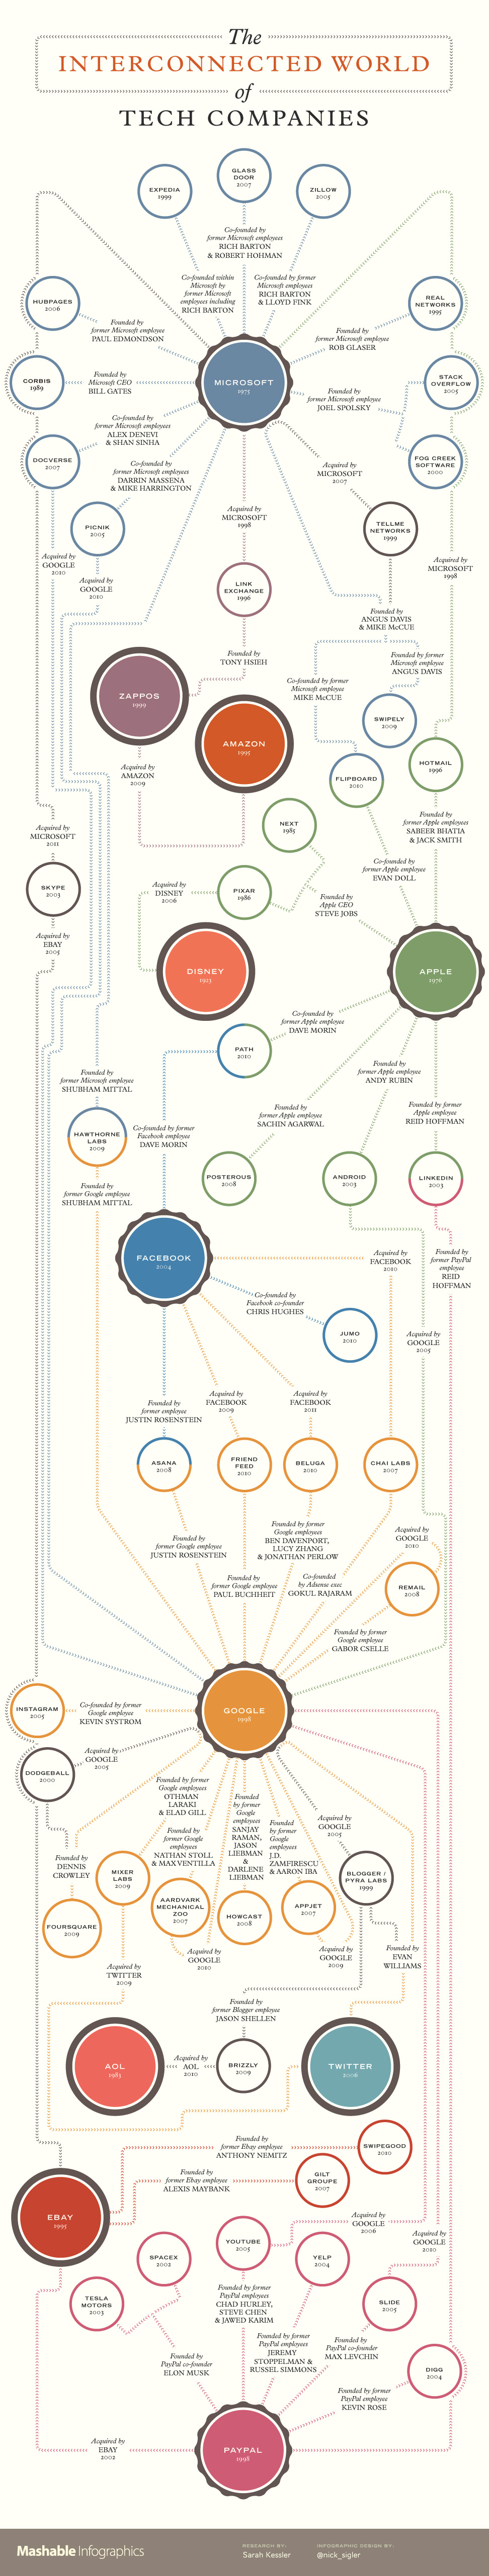 interconnected-tech-companies